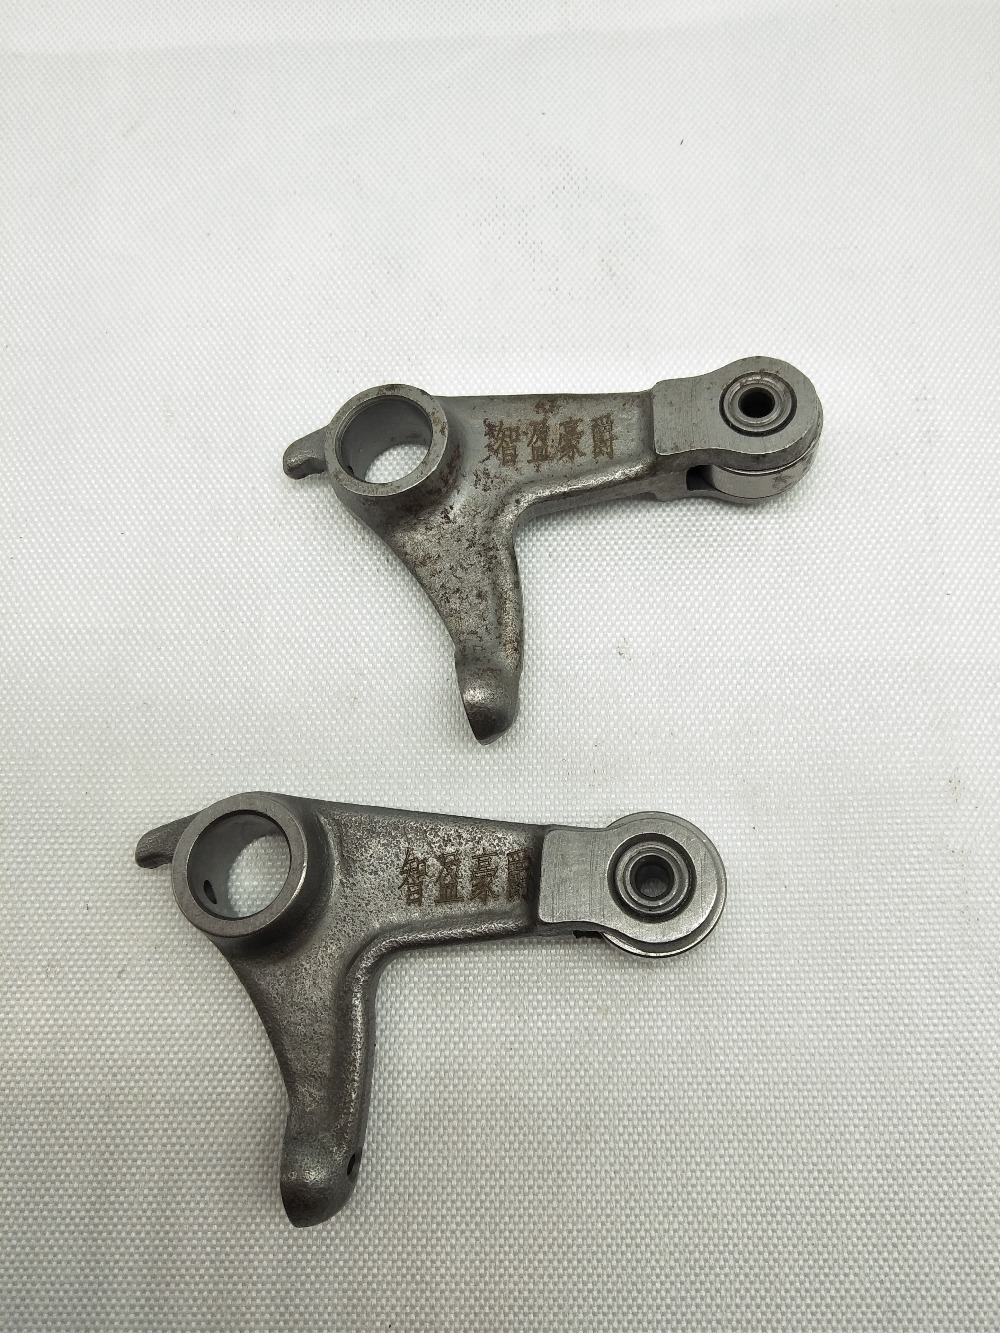 A63 1 Engine Spare Parts Motorcycle Swing Rocker Arm For Suzuki CG125 Lower Arm Motor Rocker